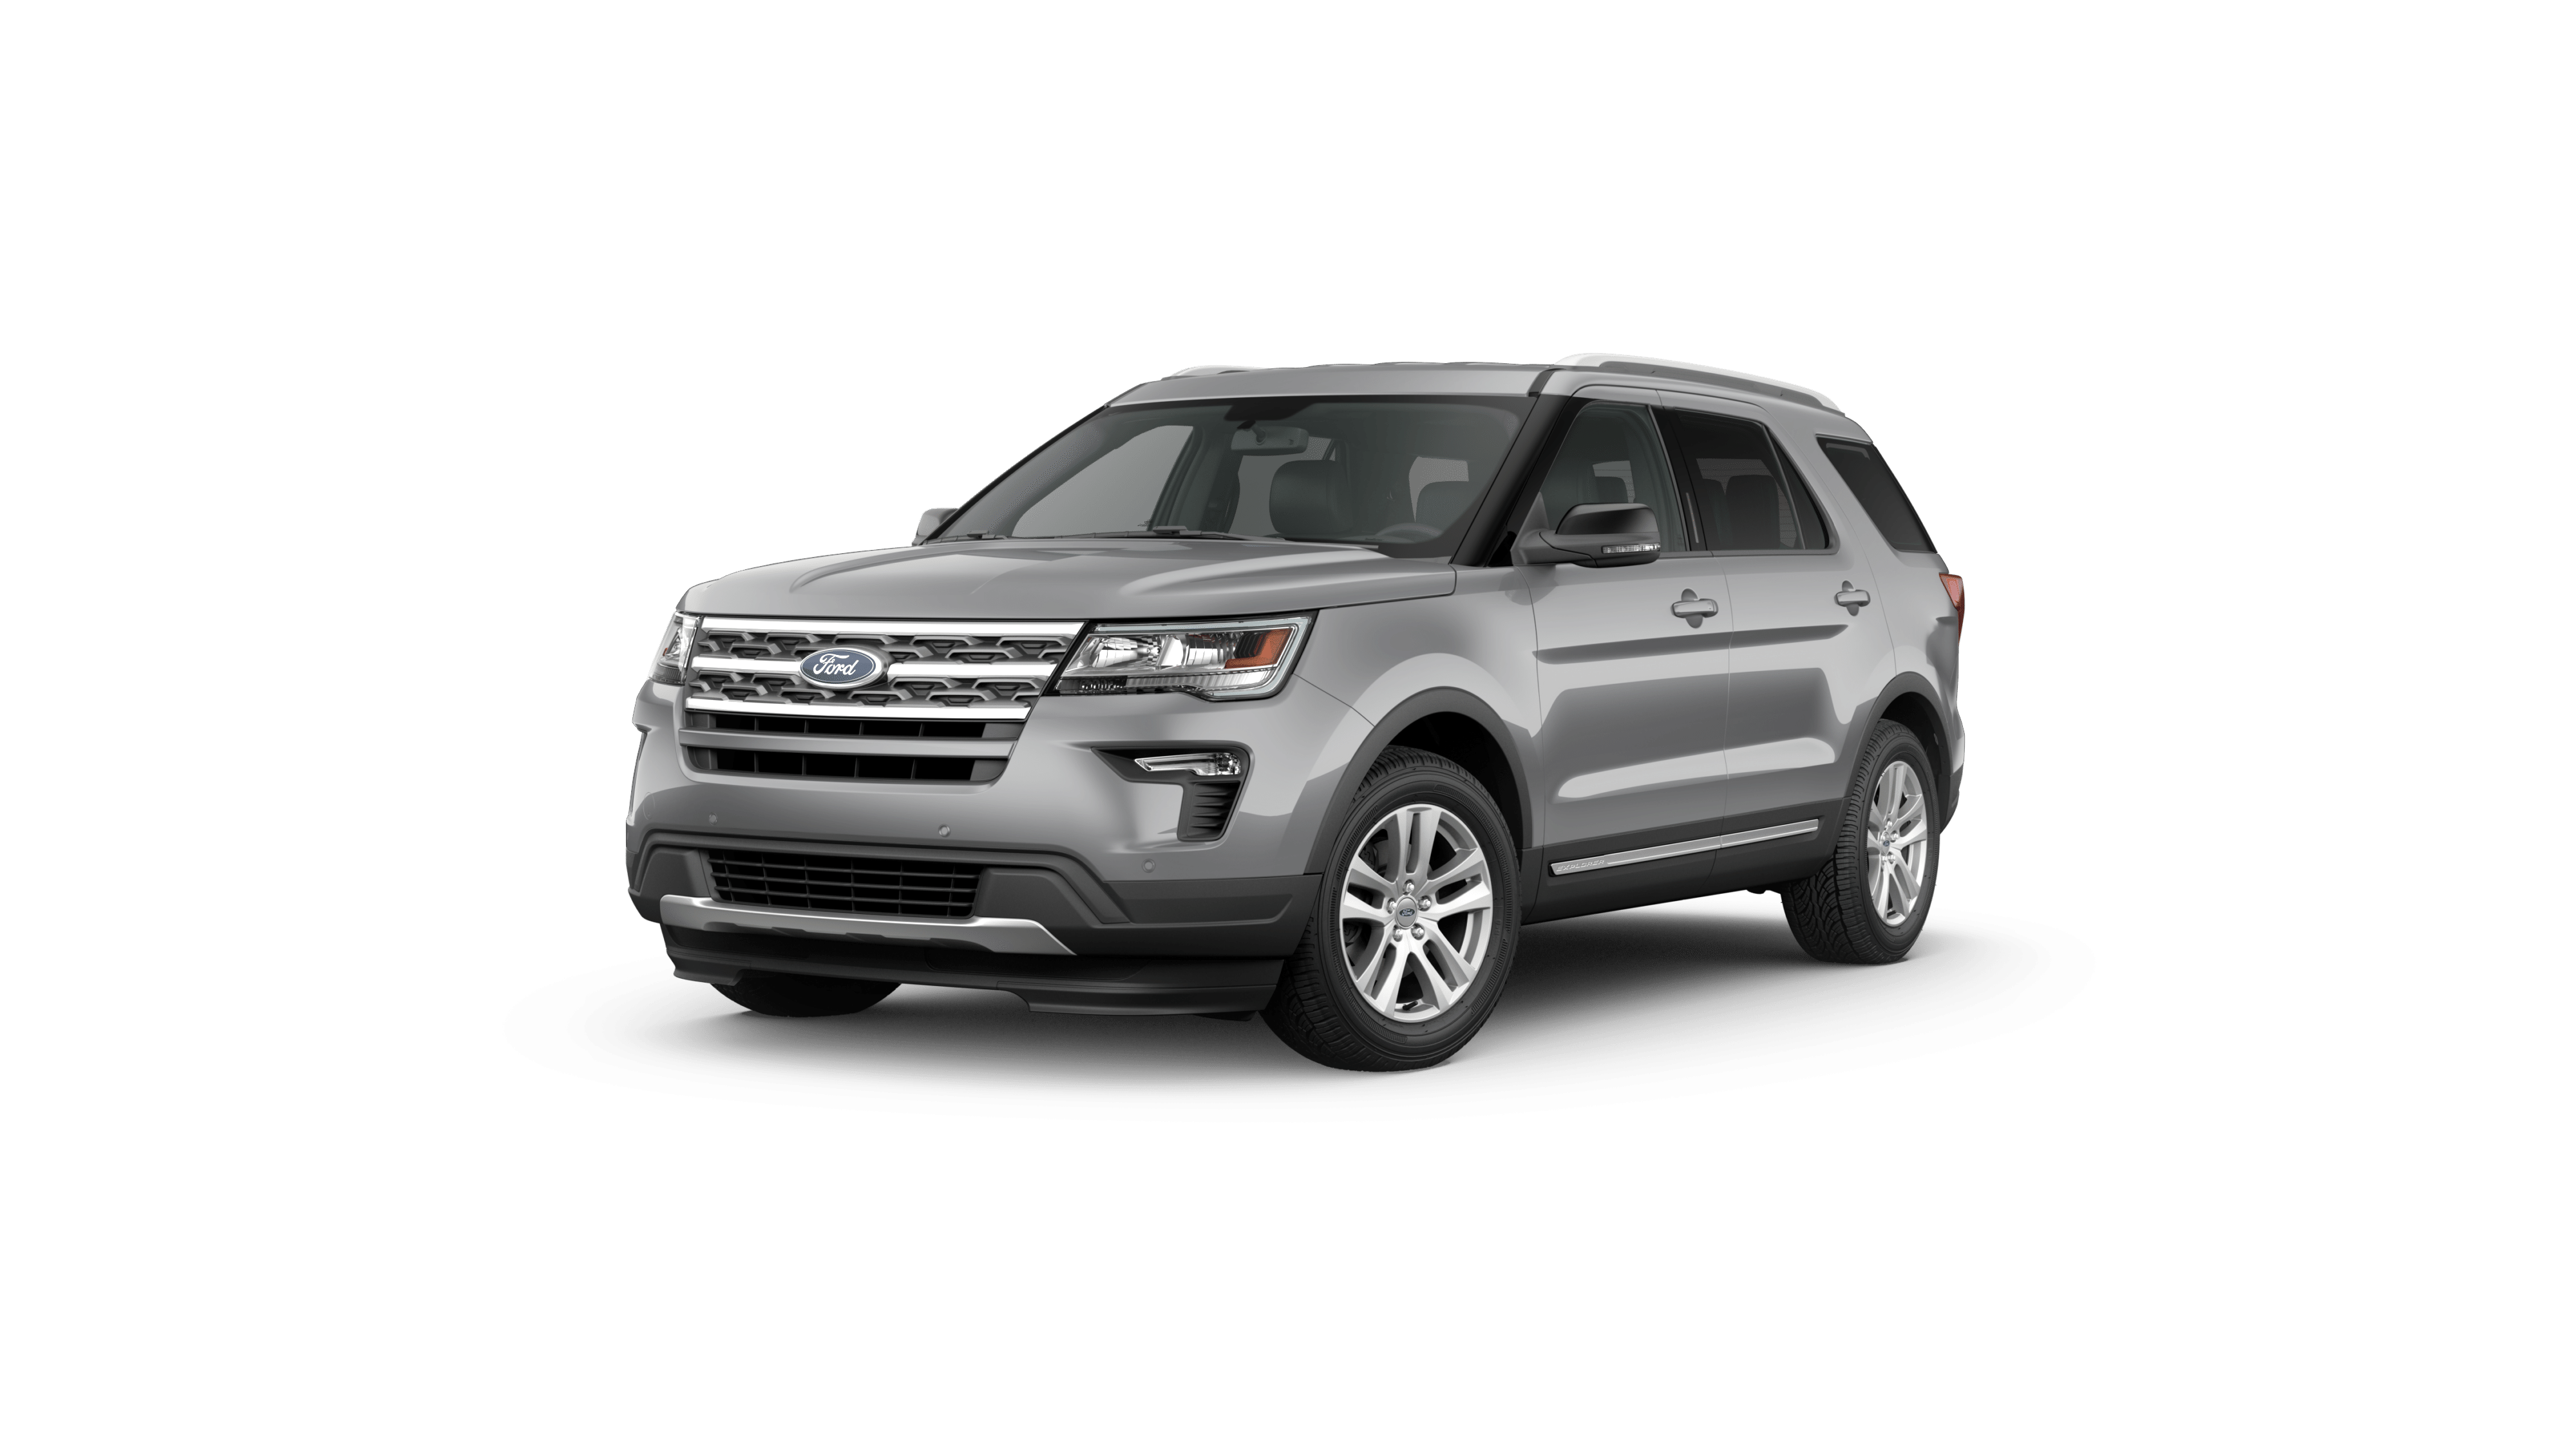 Ford Lease El Paso >> ford red carpet lease credit requirements - Home The Honoroak